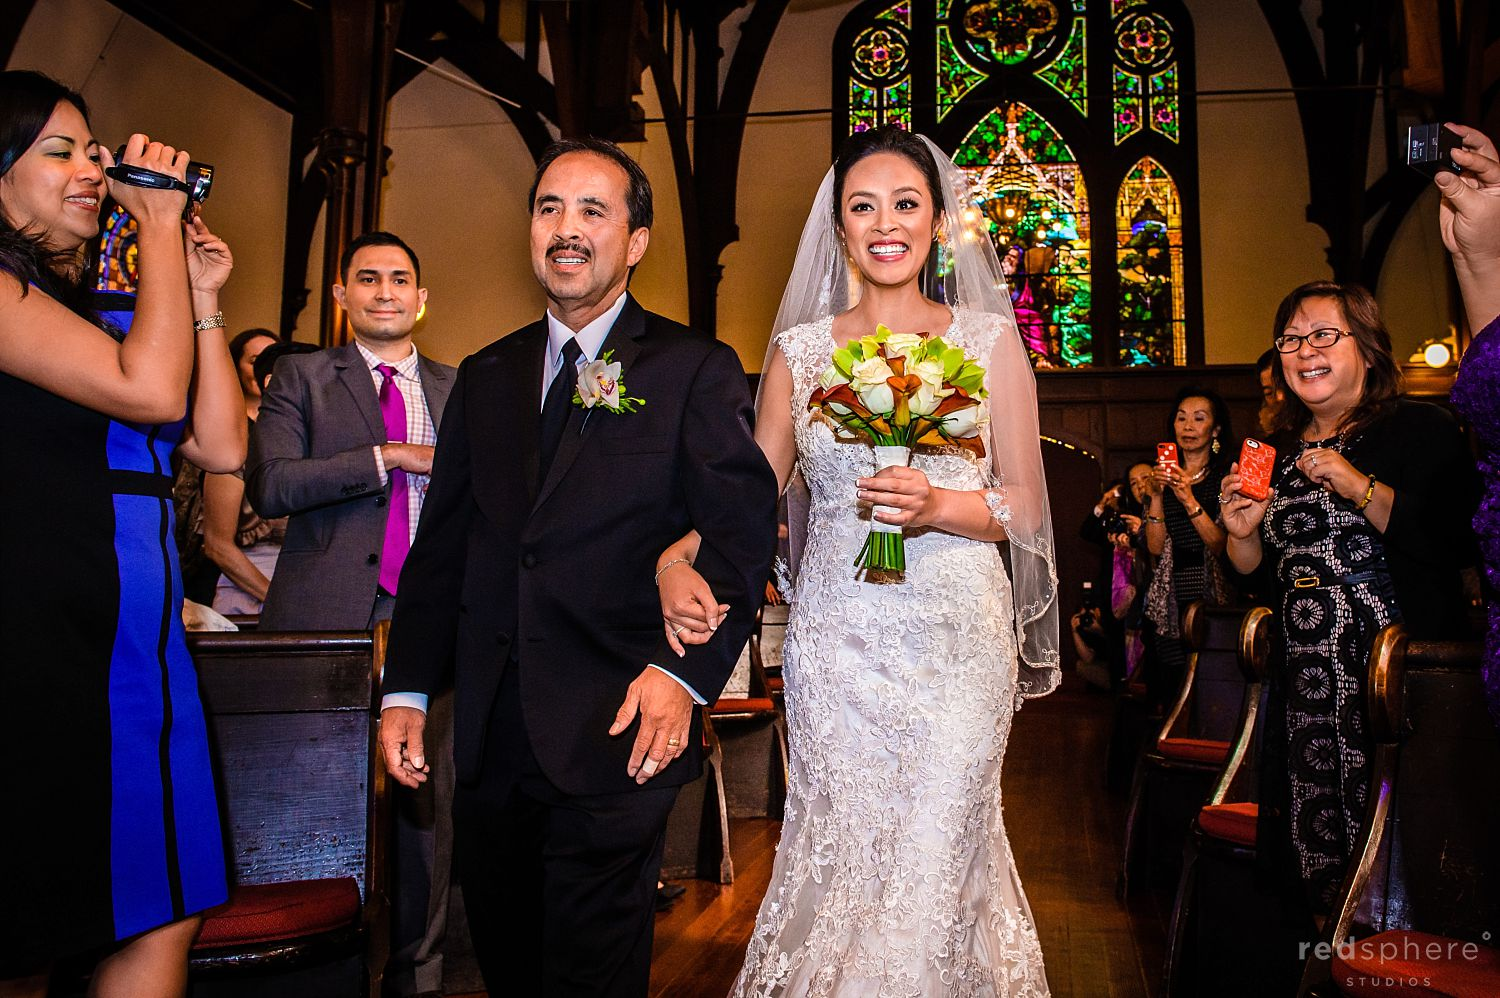 Father of Bride Walking Daughter Down the Aisle, Guests Clap and Record, St. John's Presbyterian Church Wedding